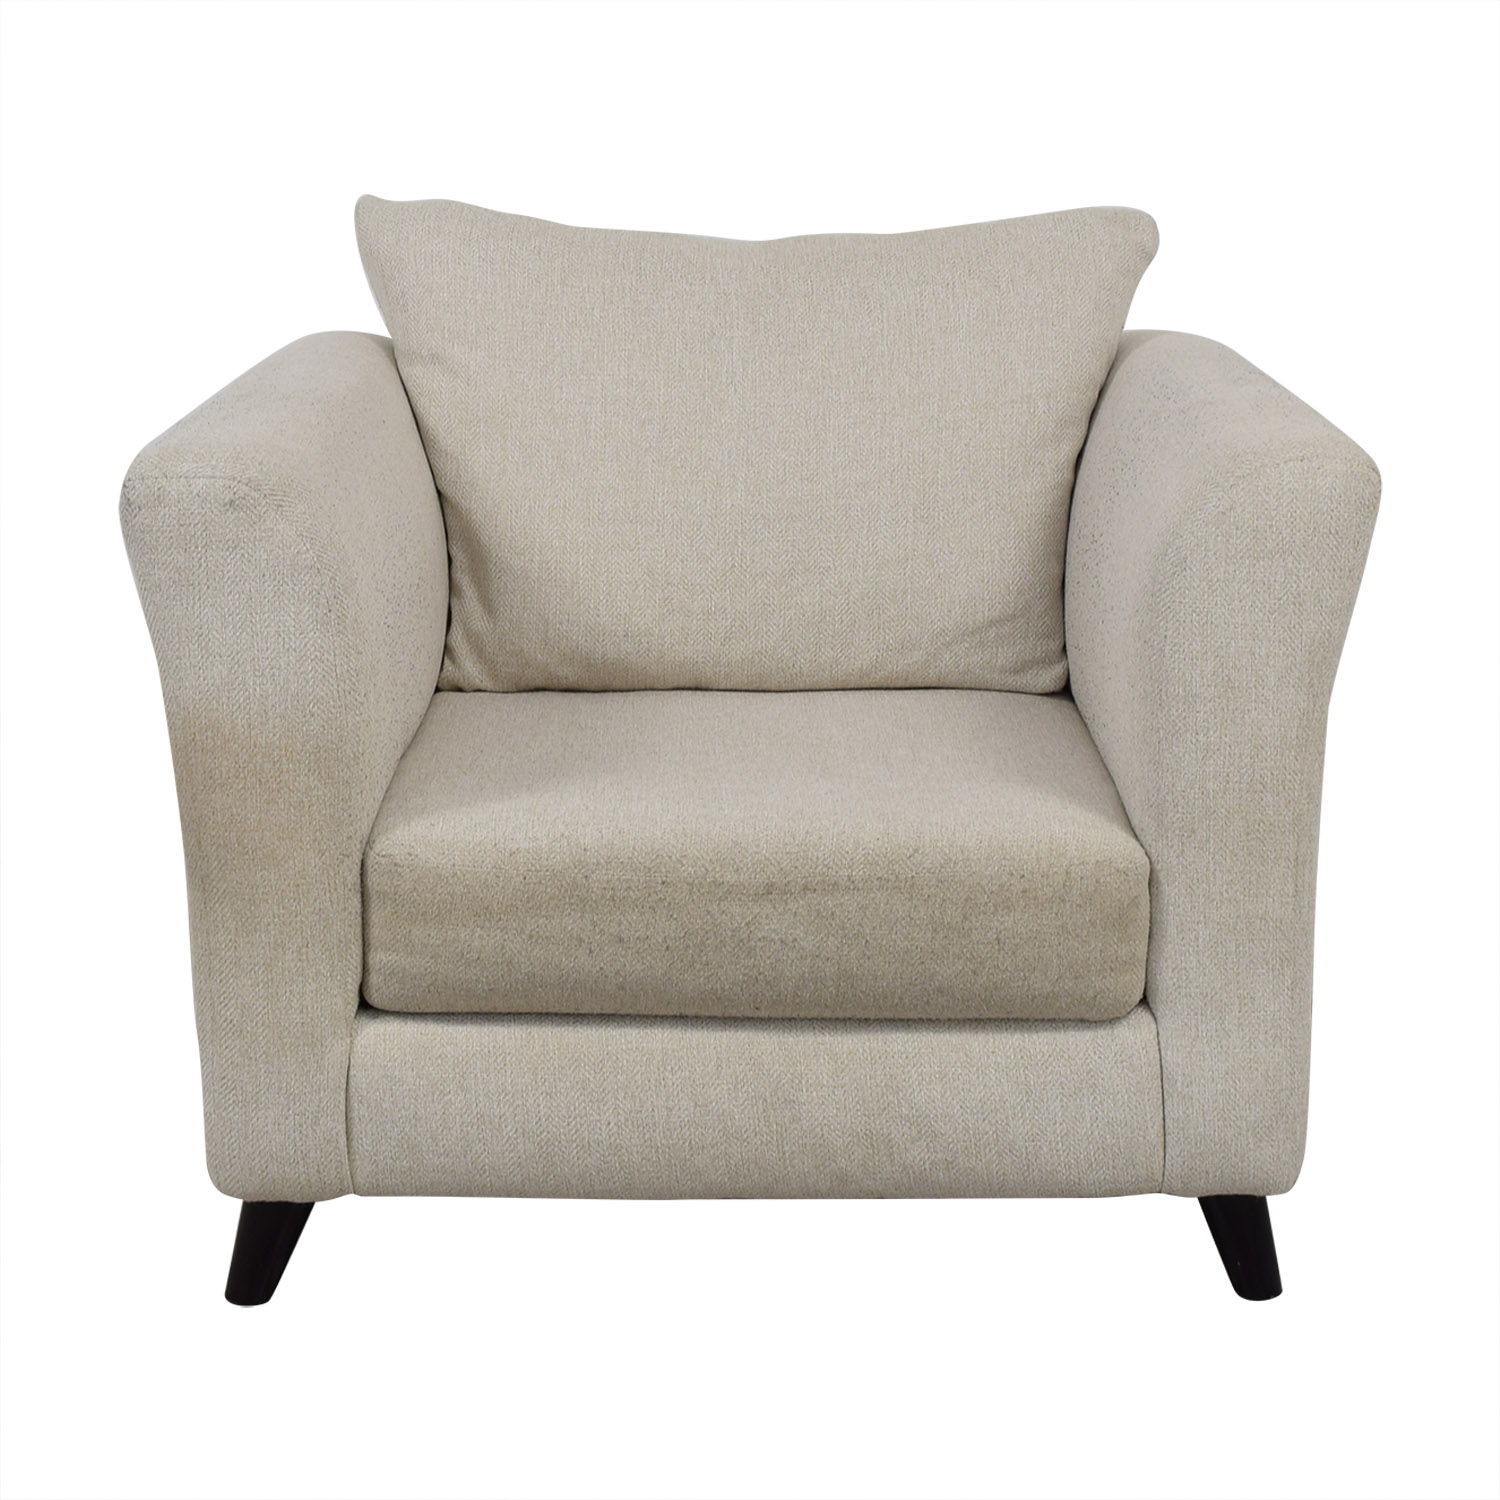 buy Raymour & Flanigan Oversized Chair Raymour & Flanigan Chairs